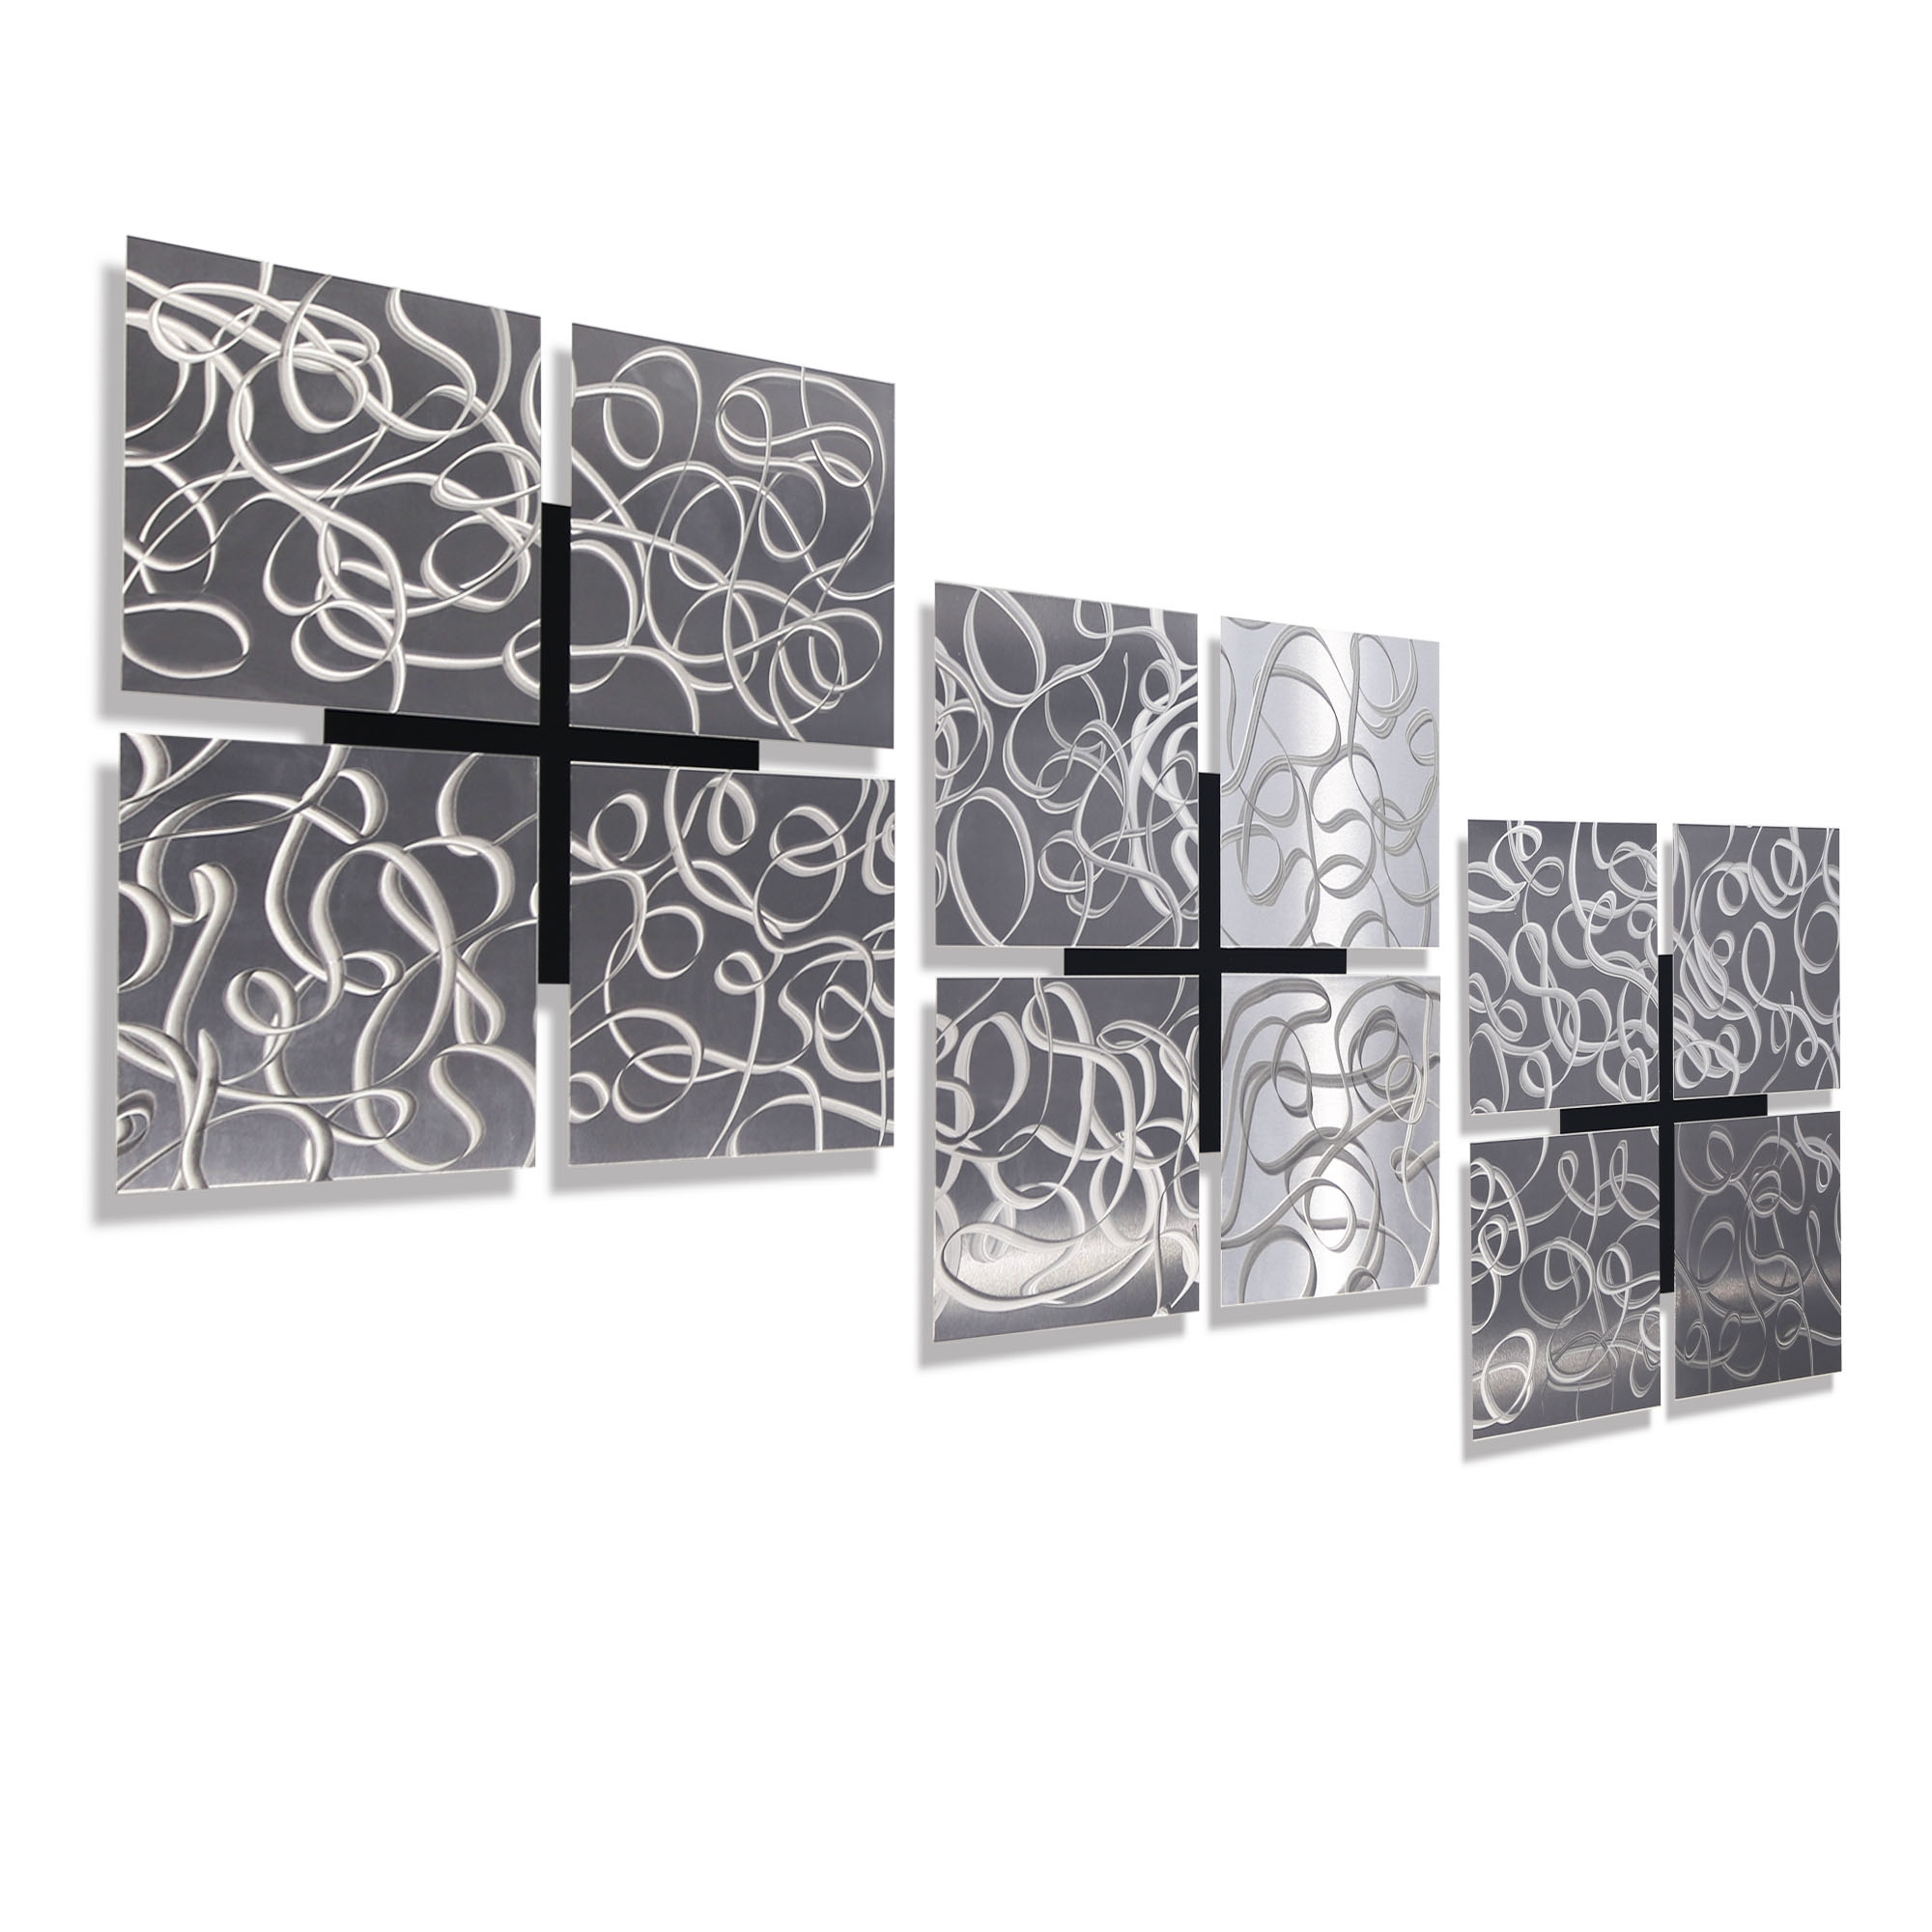 "3 Kings – Silver Set Of Three 12"" X 12"" Metal Wall Art Accents Pertaining To Latest Wall Art Accents (View 9 of 15)"